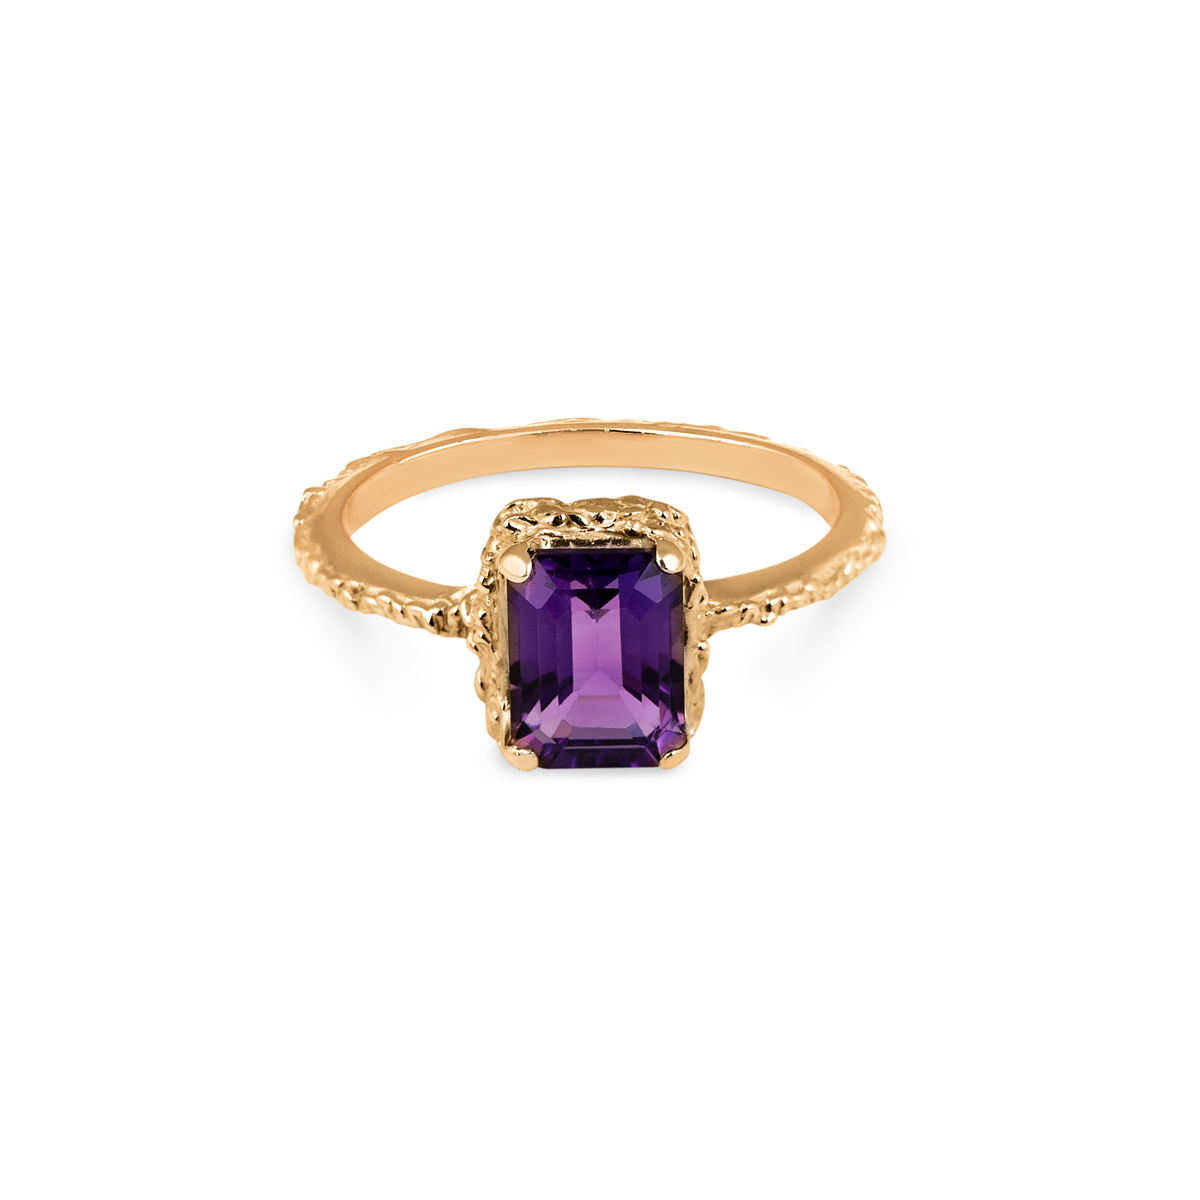 18K Queen Amethyst Ring in the group SHOP / RINGS at EMMA ISRAELSSON (ring070)